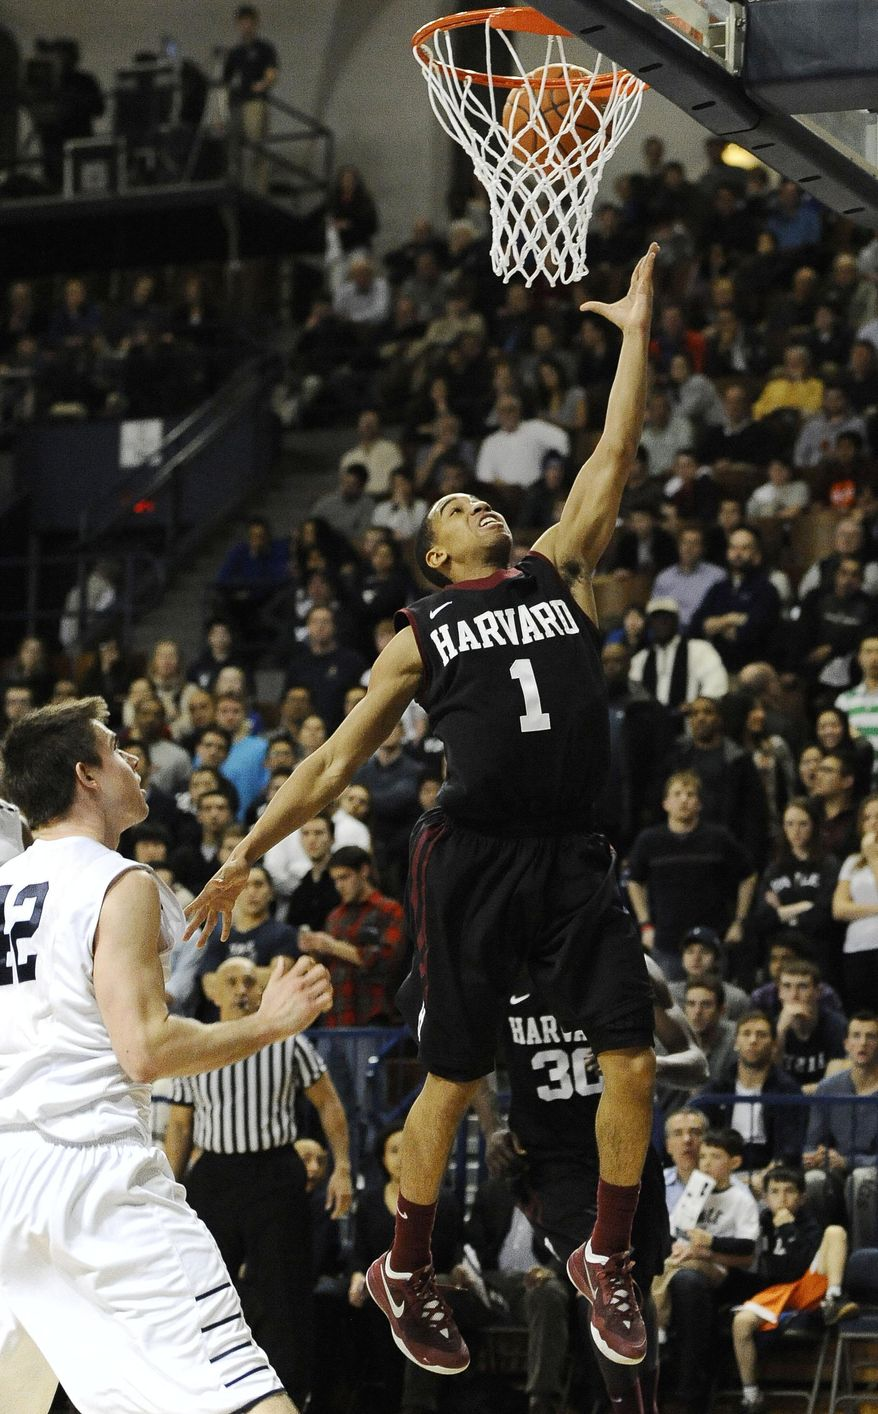 Harvard's Siyani Chambers, right, goes up for a basket as Yale's Matt Townsend, left, defends during the second half of an NCAA college basketball game, Friday, March 7, 2014, in New Haven, Conn. (AP Photo/Jessica Hill)